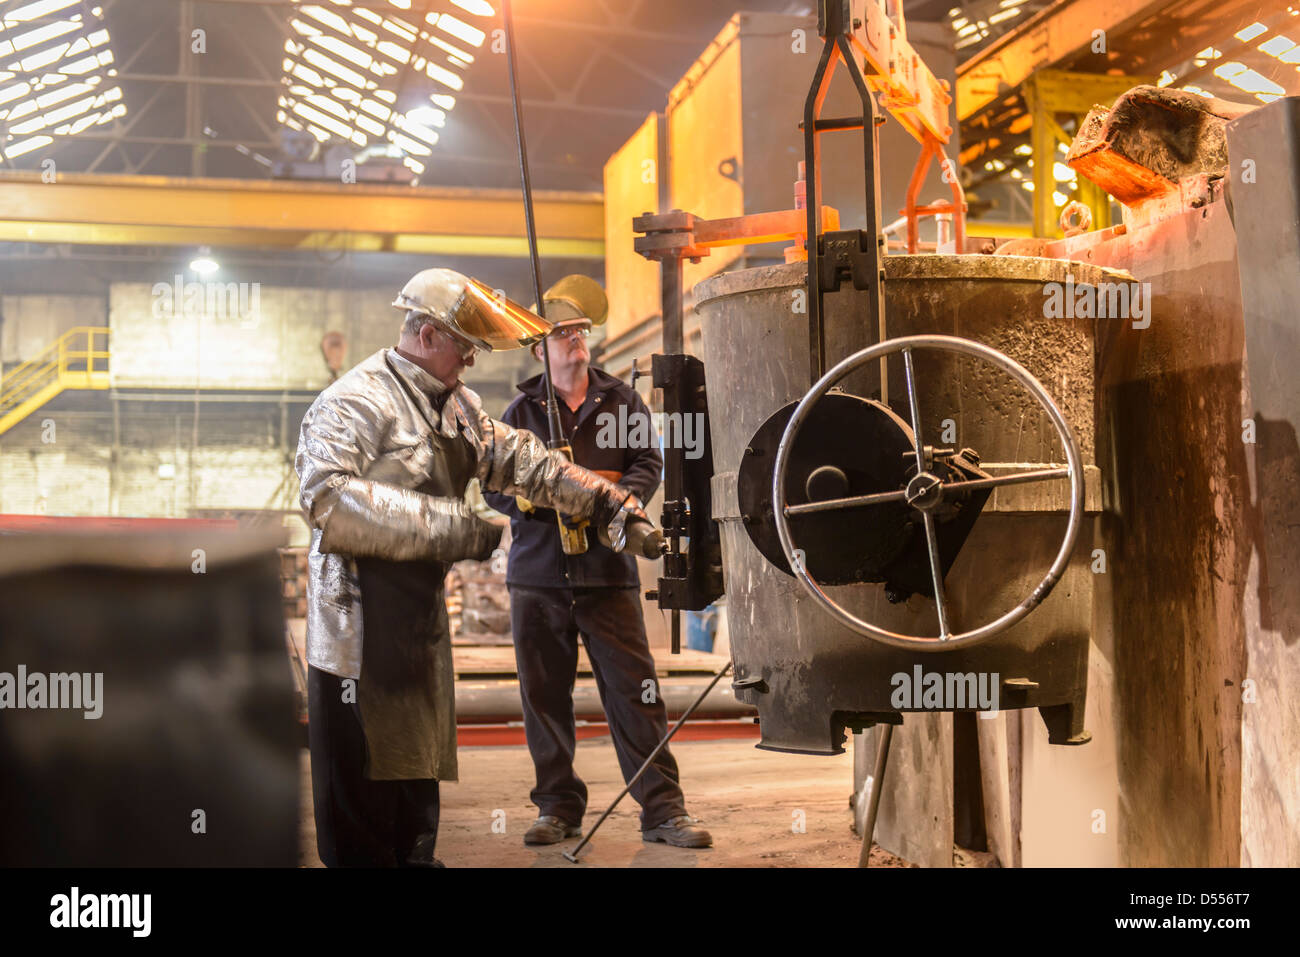 Workers with vat of molten metal - Stock Image